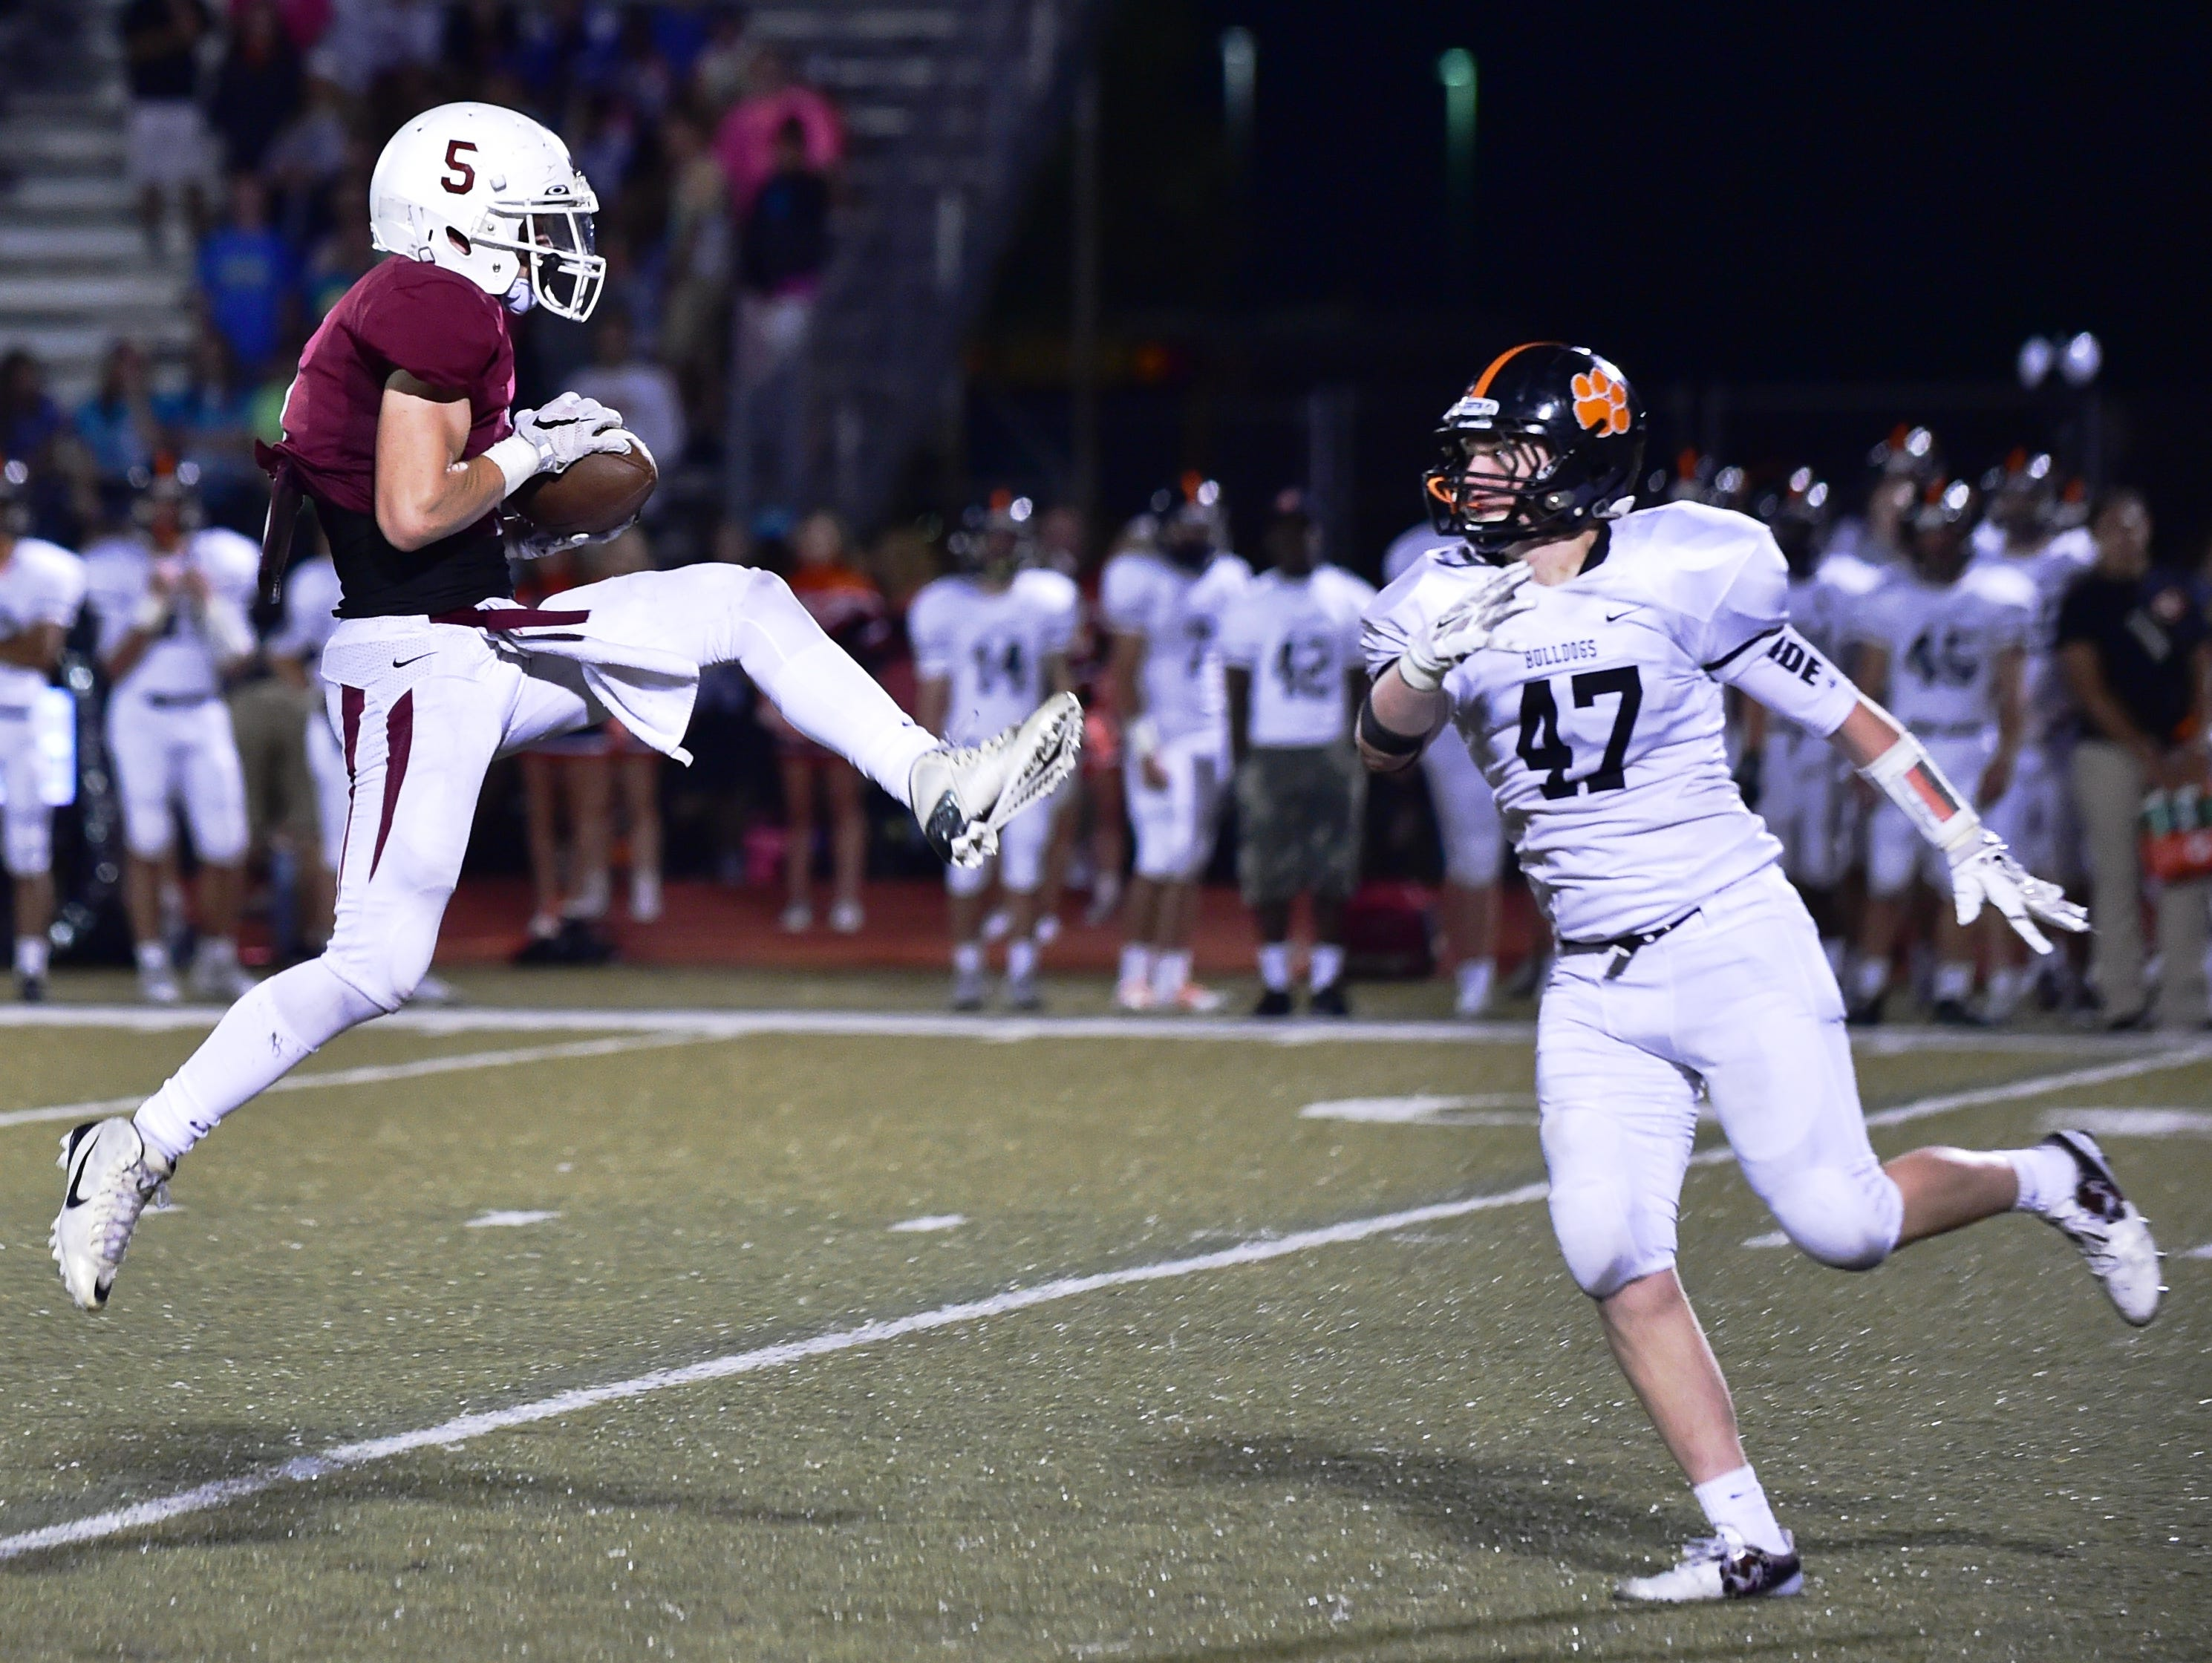 Milford's Logan Kahl makes the leaping catch in front of Brighton's Mike Redlinger.